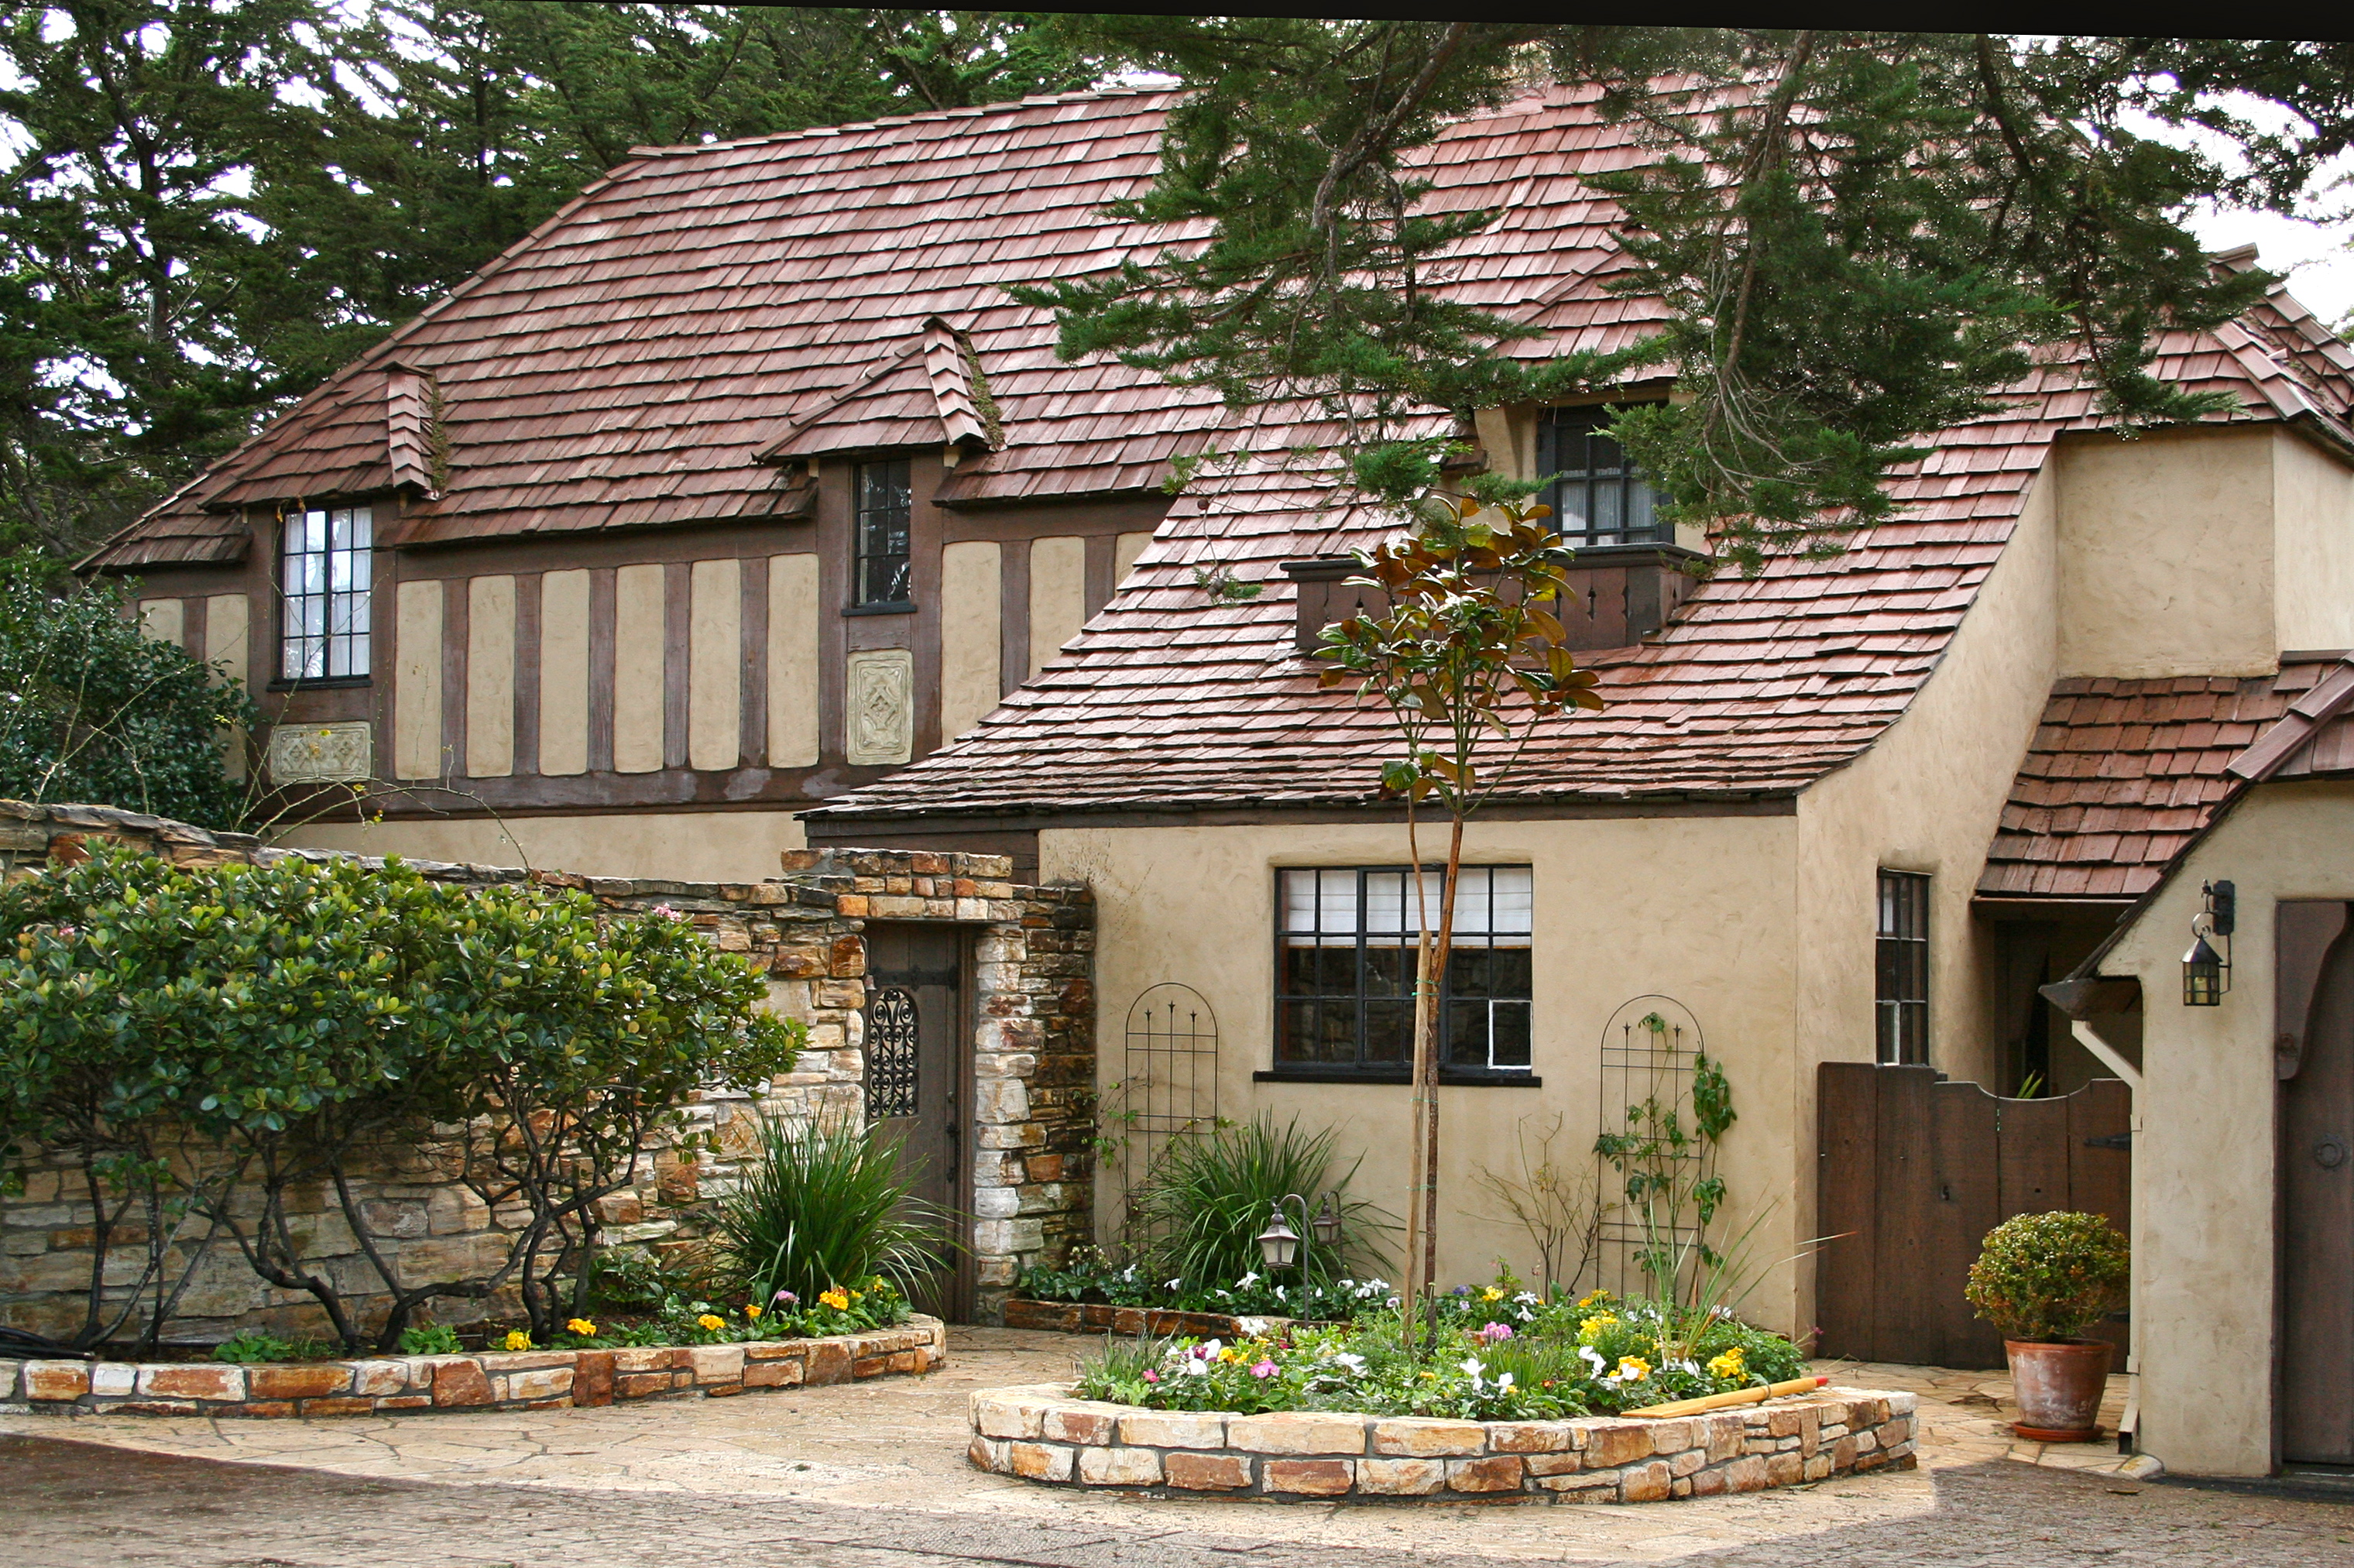 HUGH COMSTOCK BUILDS A COUNTRY MANOR HOUSE ON CARMEL POINT